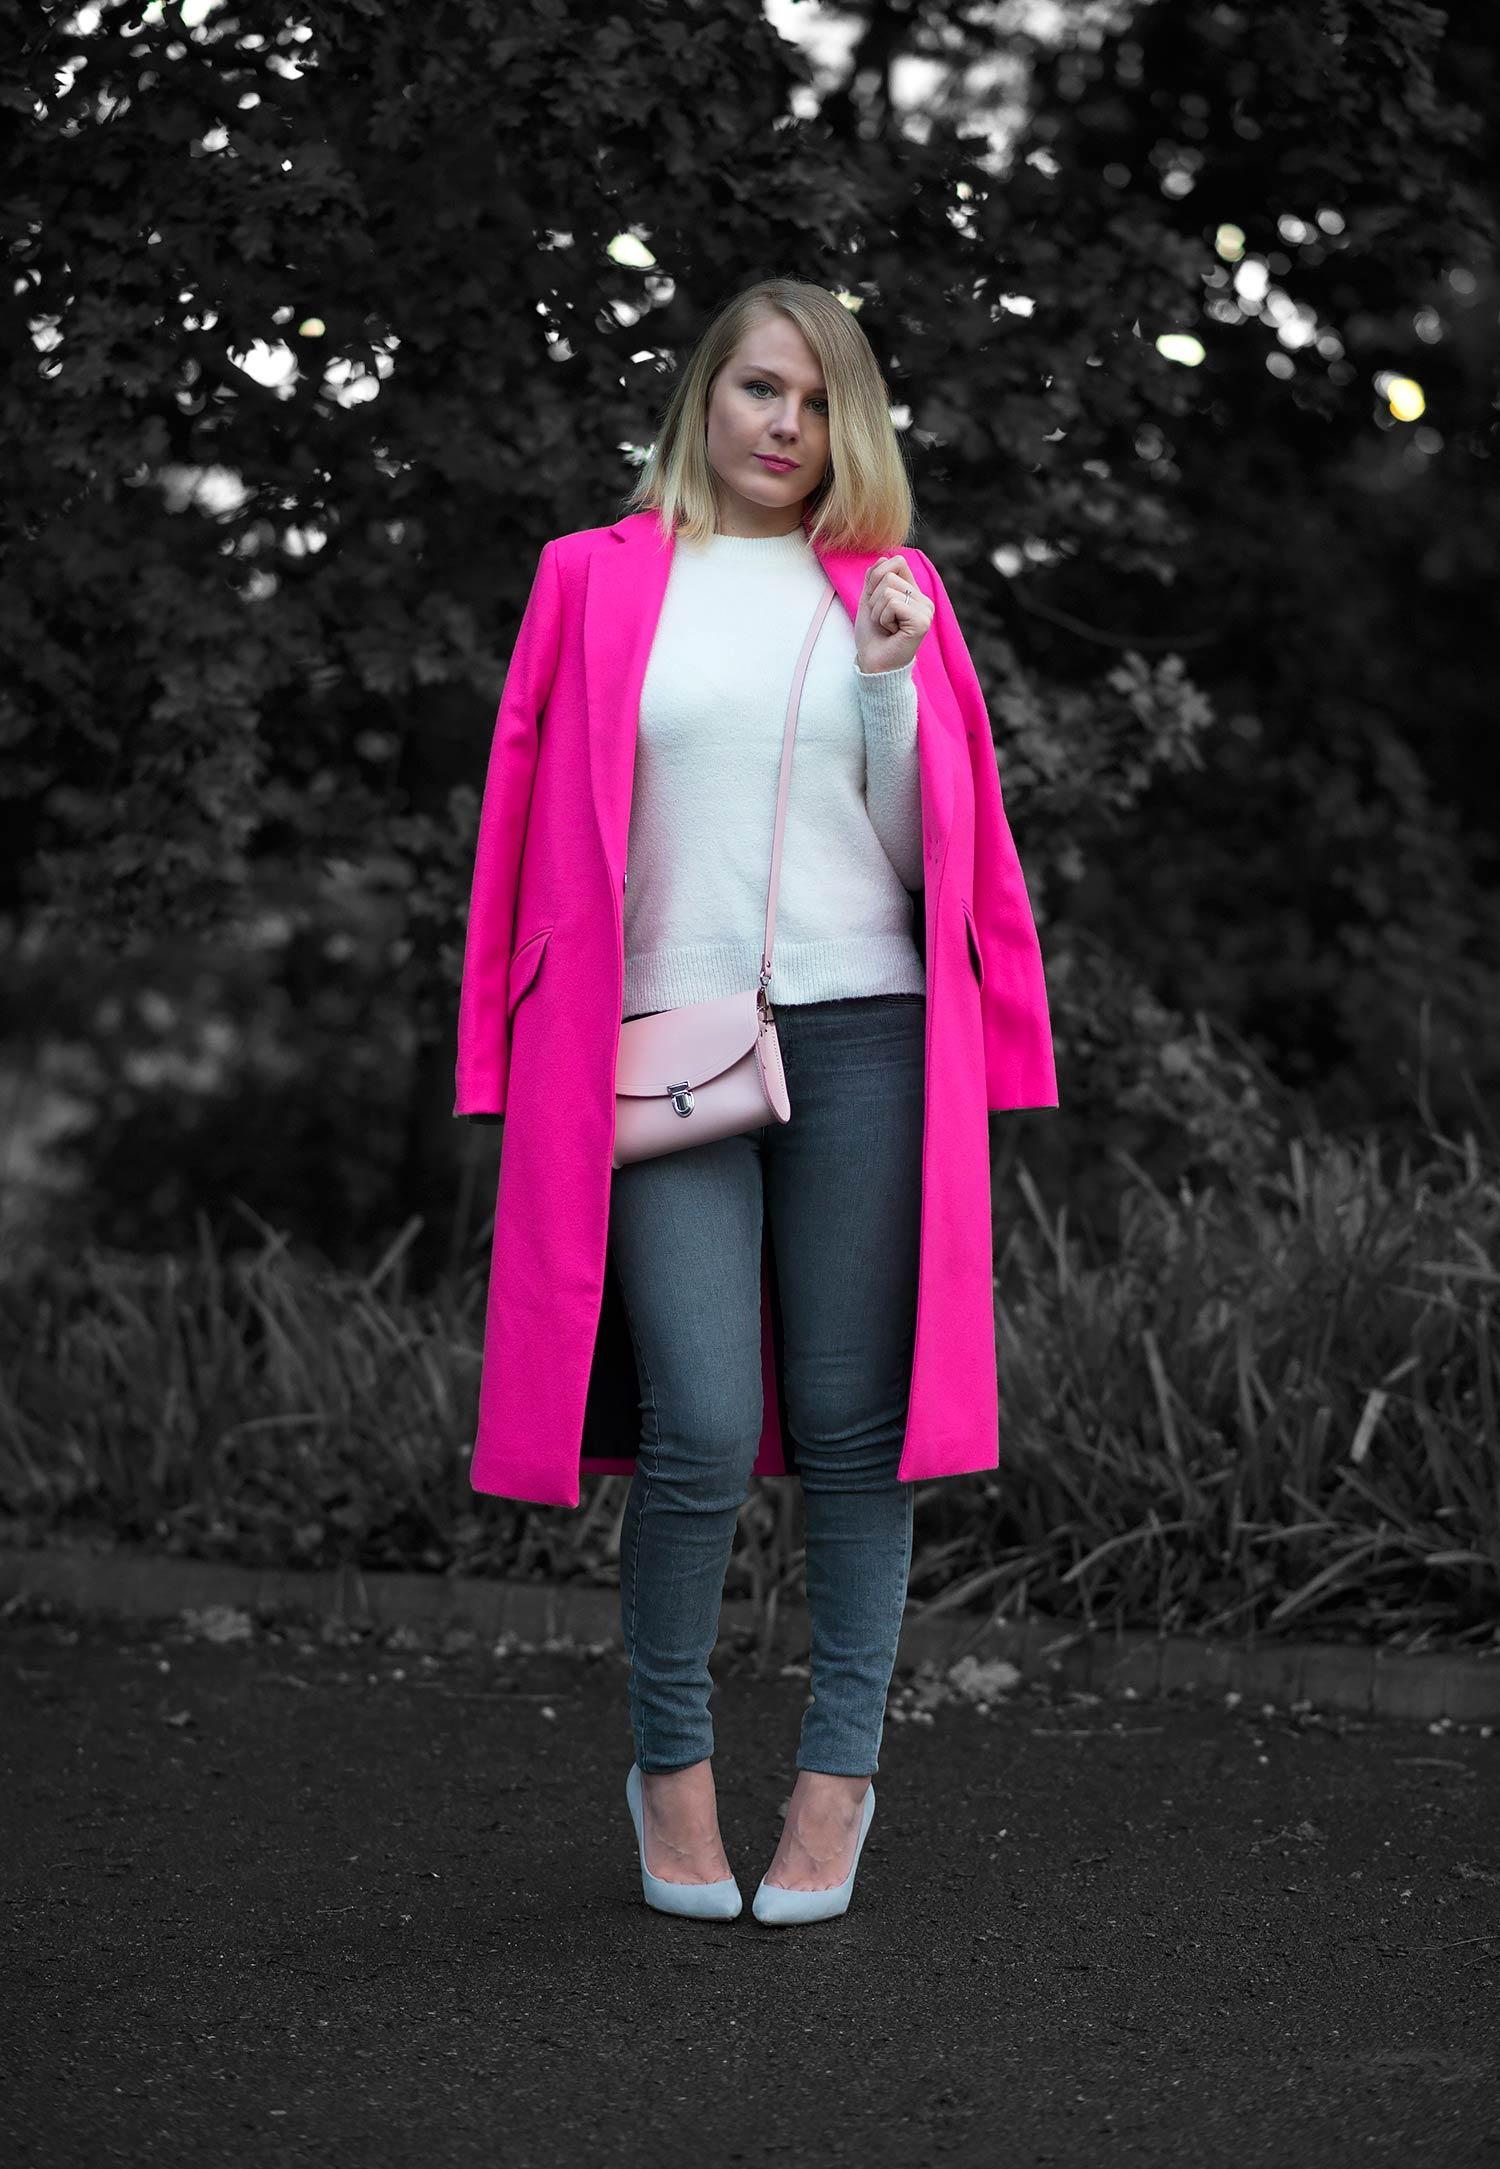 lorna-burford-fashion-blogger-pink-coat